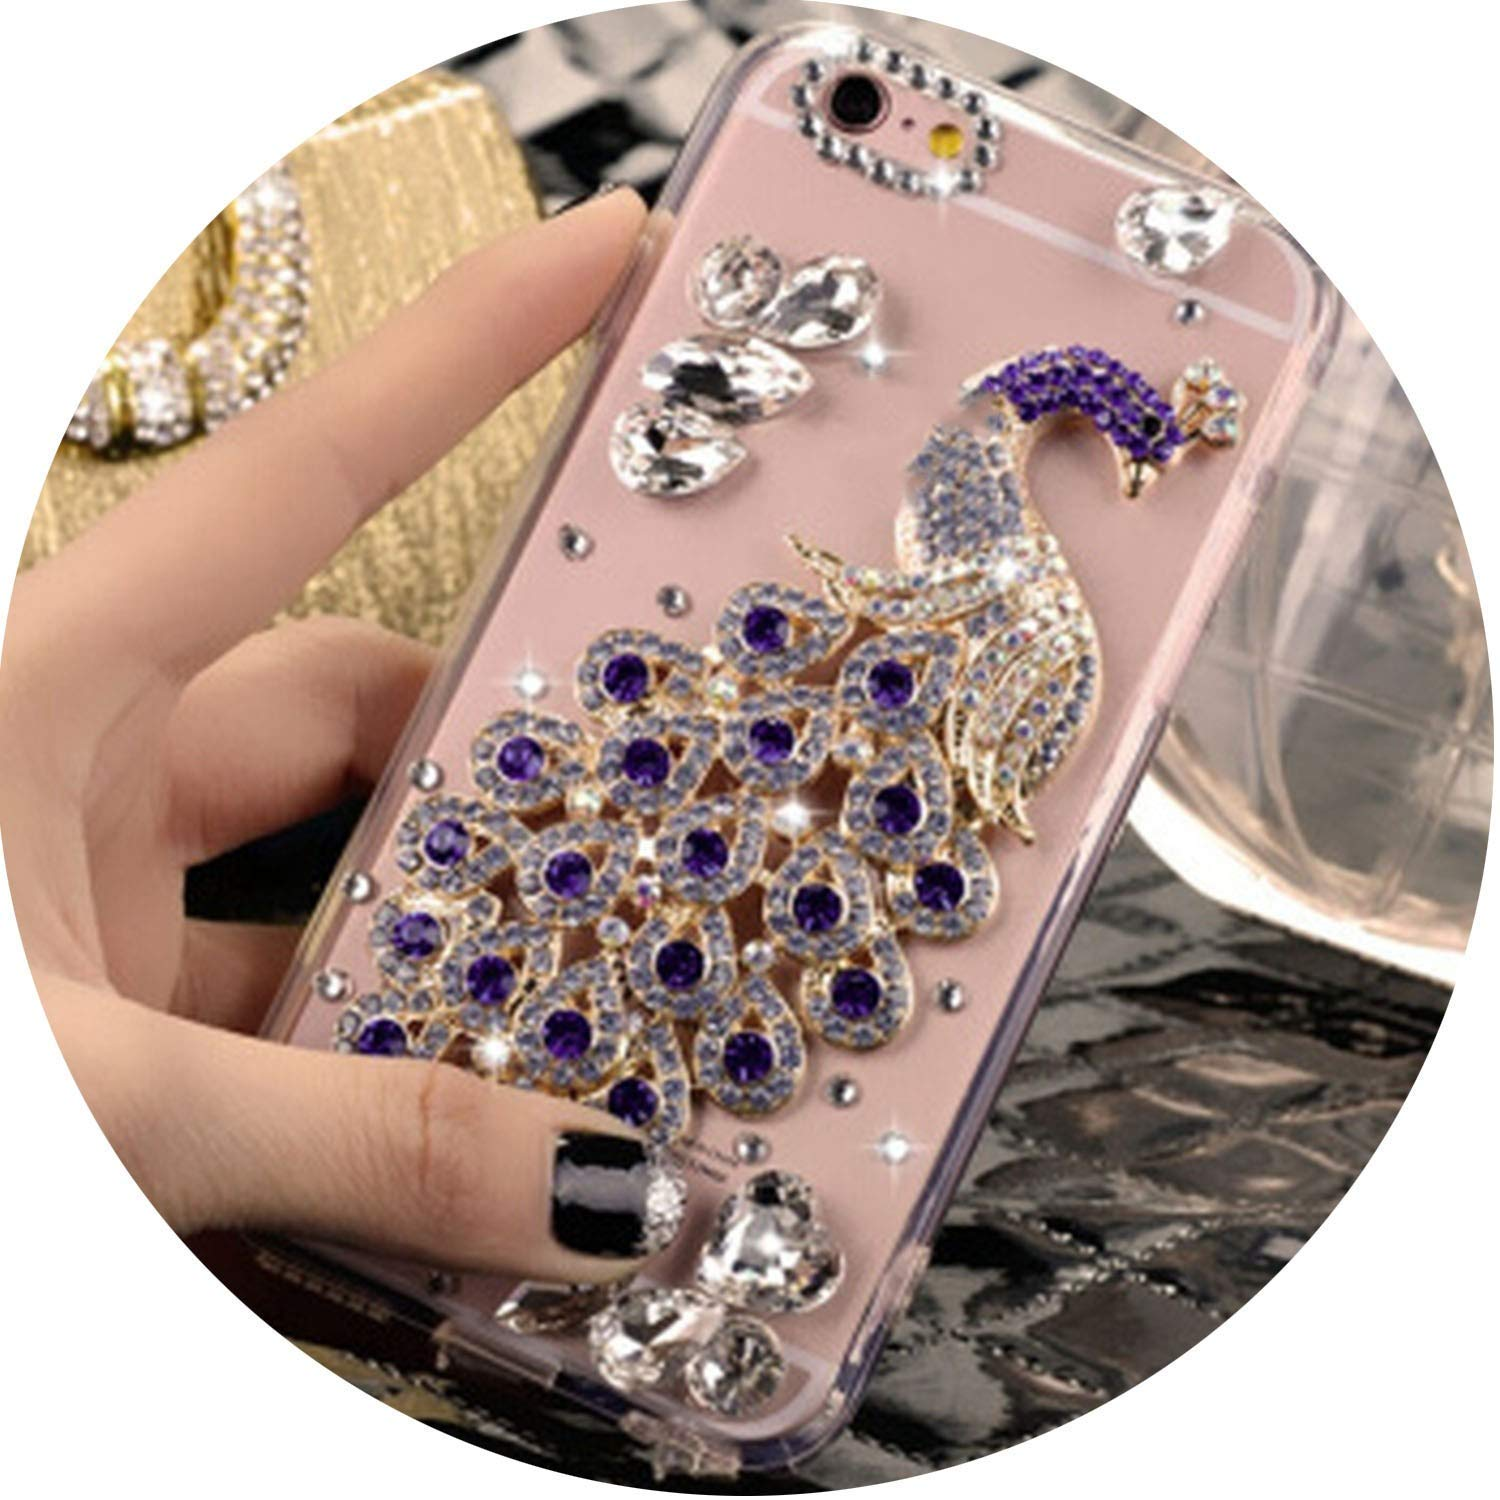 Phone Cases for iPhone X XS MAX XR 6 6s 7 8 Plus Luxury Glitter Diamond Peacock Crystal Mobile Phone Case, 11, for 6PLUS 6SPLUS HAATVN ADULT